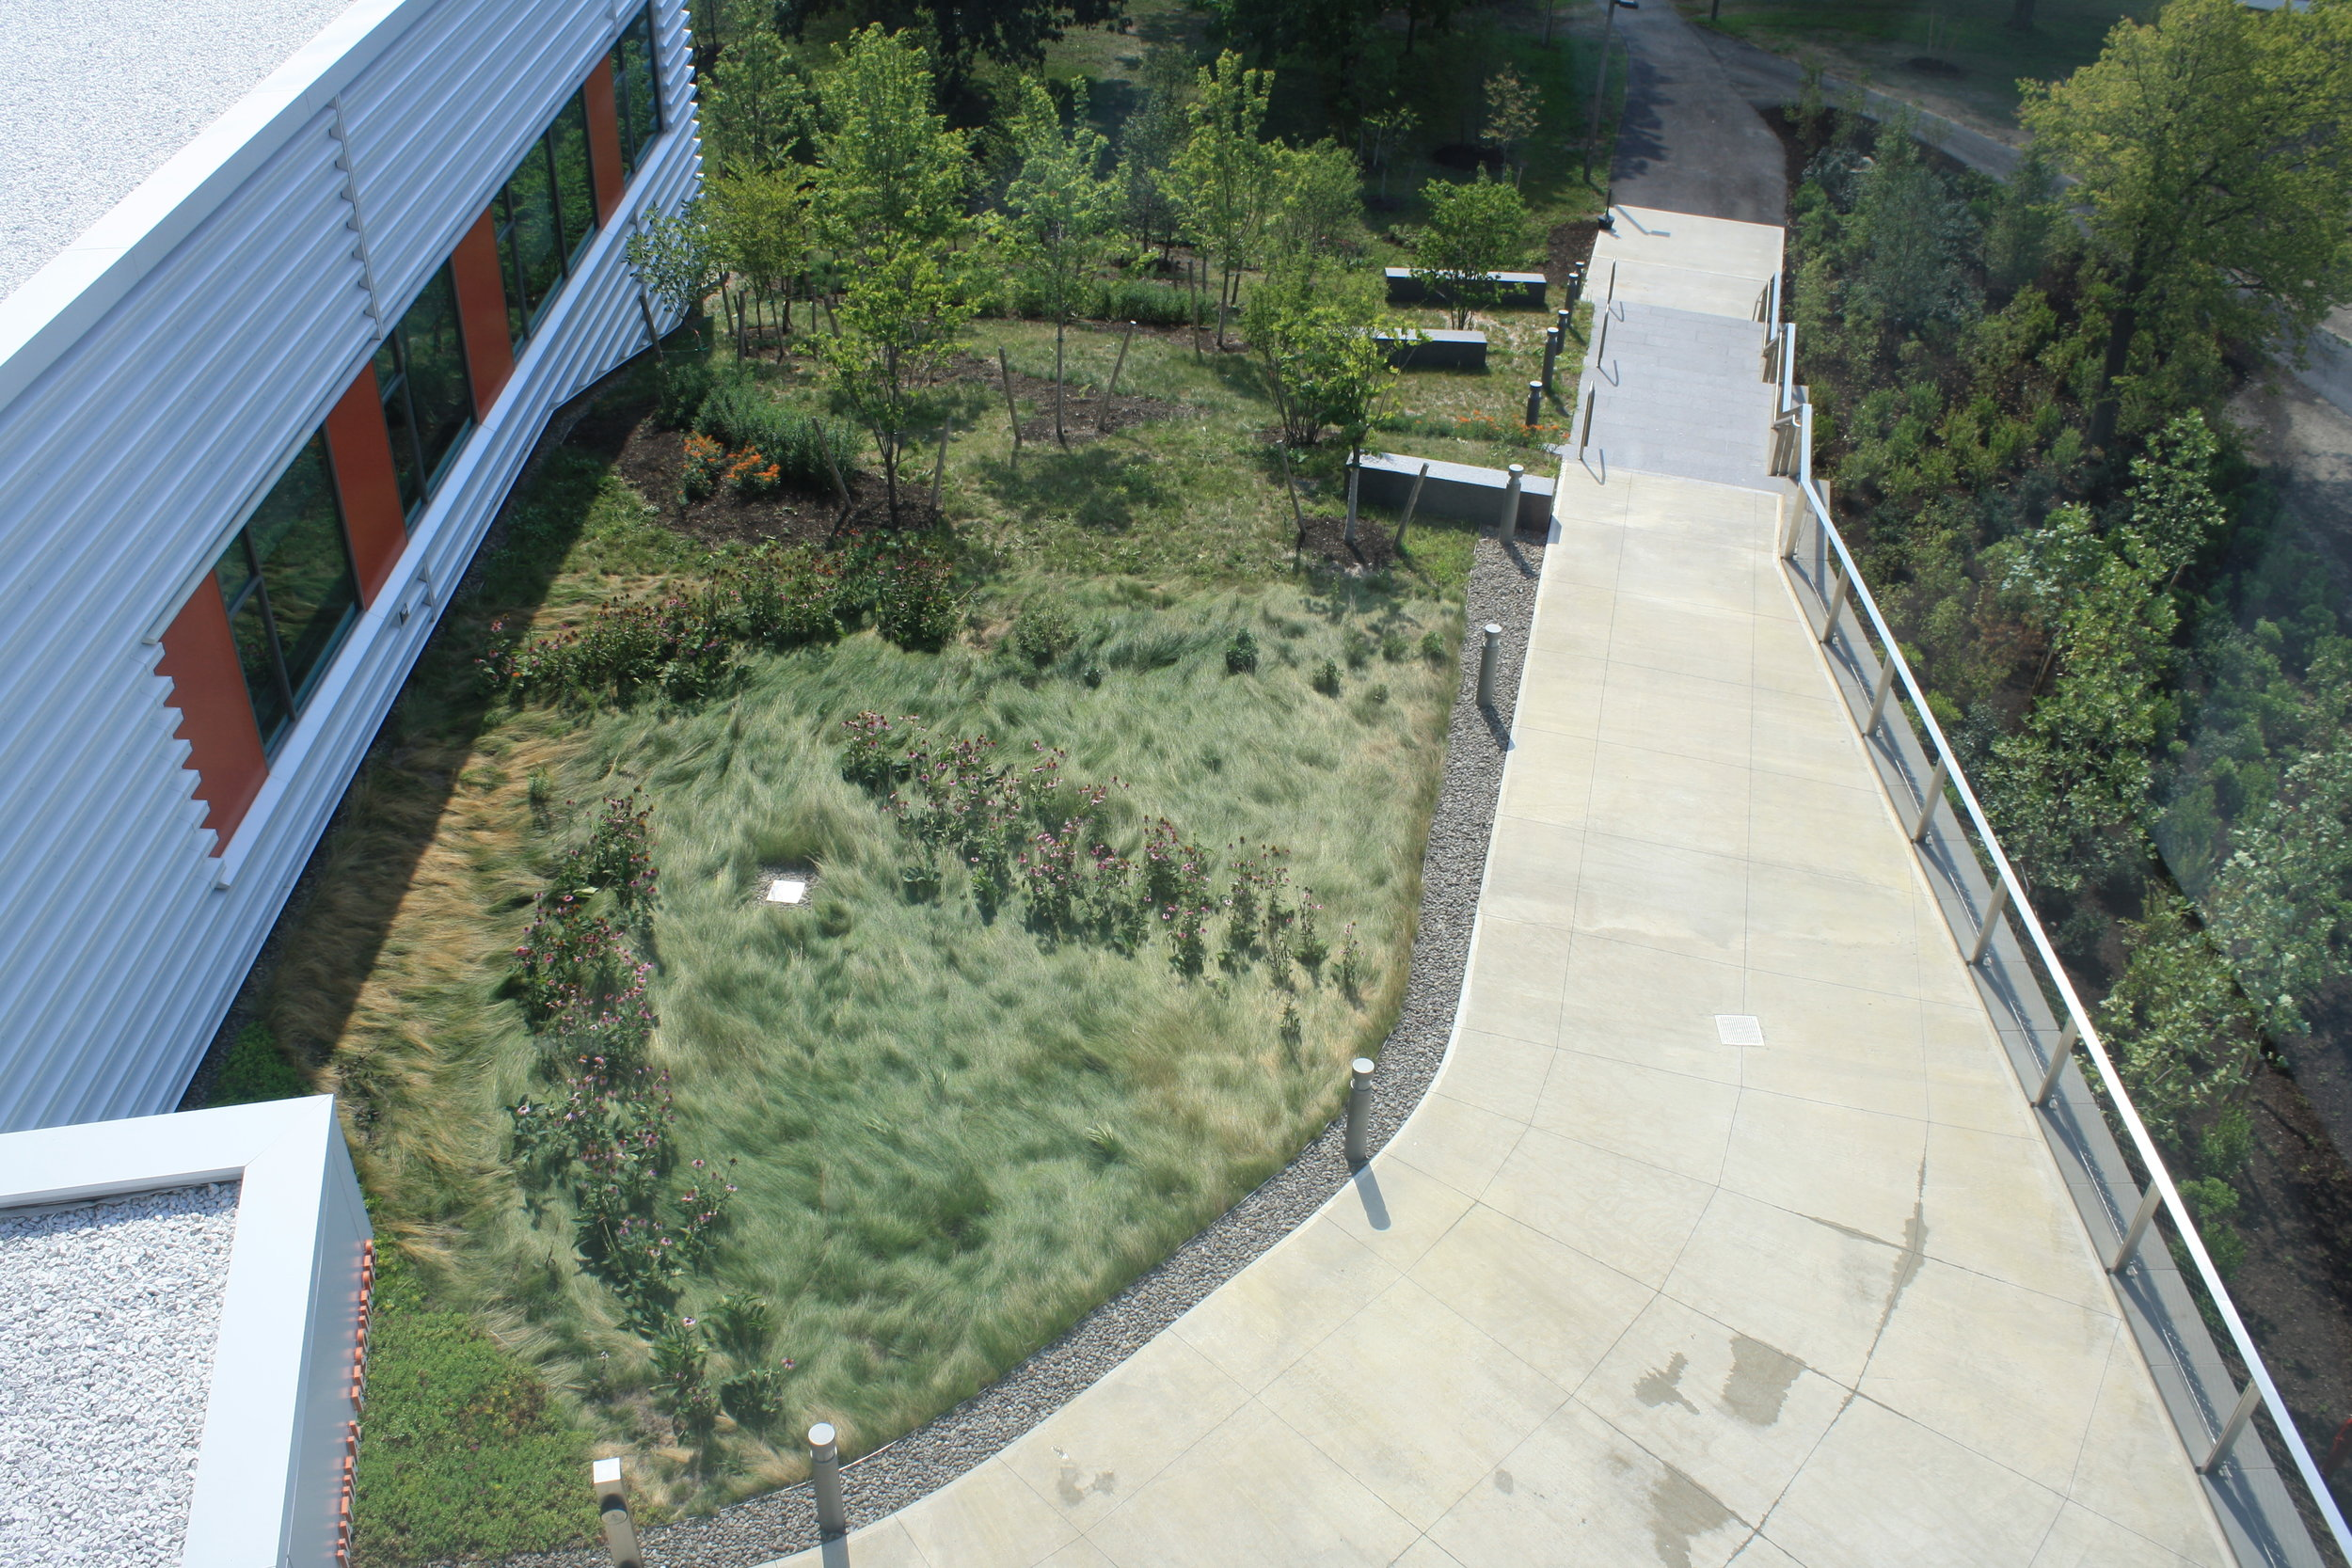 recover-green-roofs-SUNY-cobleskill-2014-26.jpg